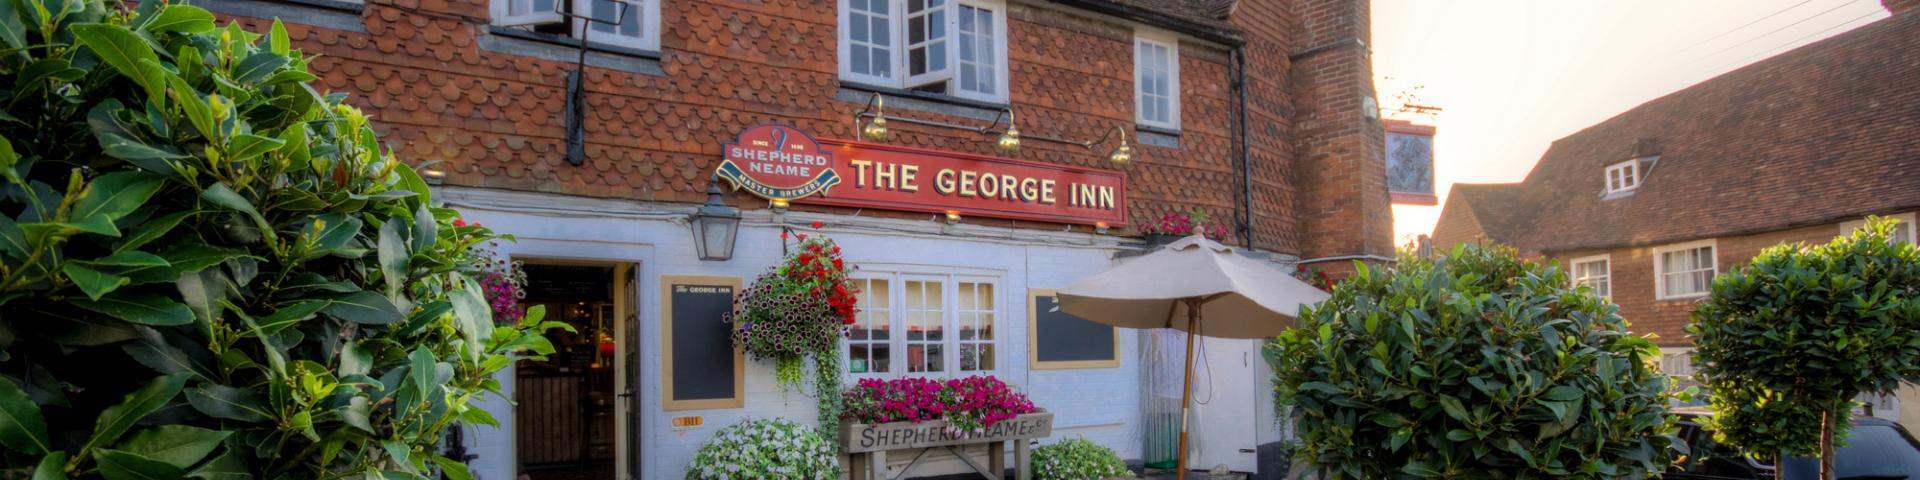 George Inn, Leeds, Maidstone